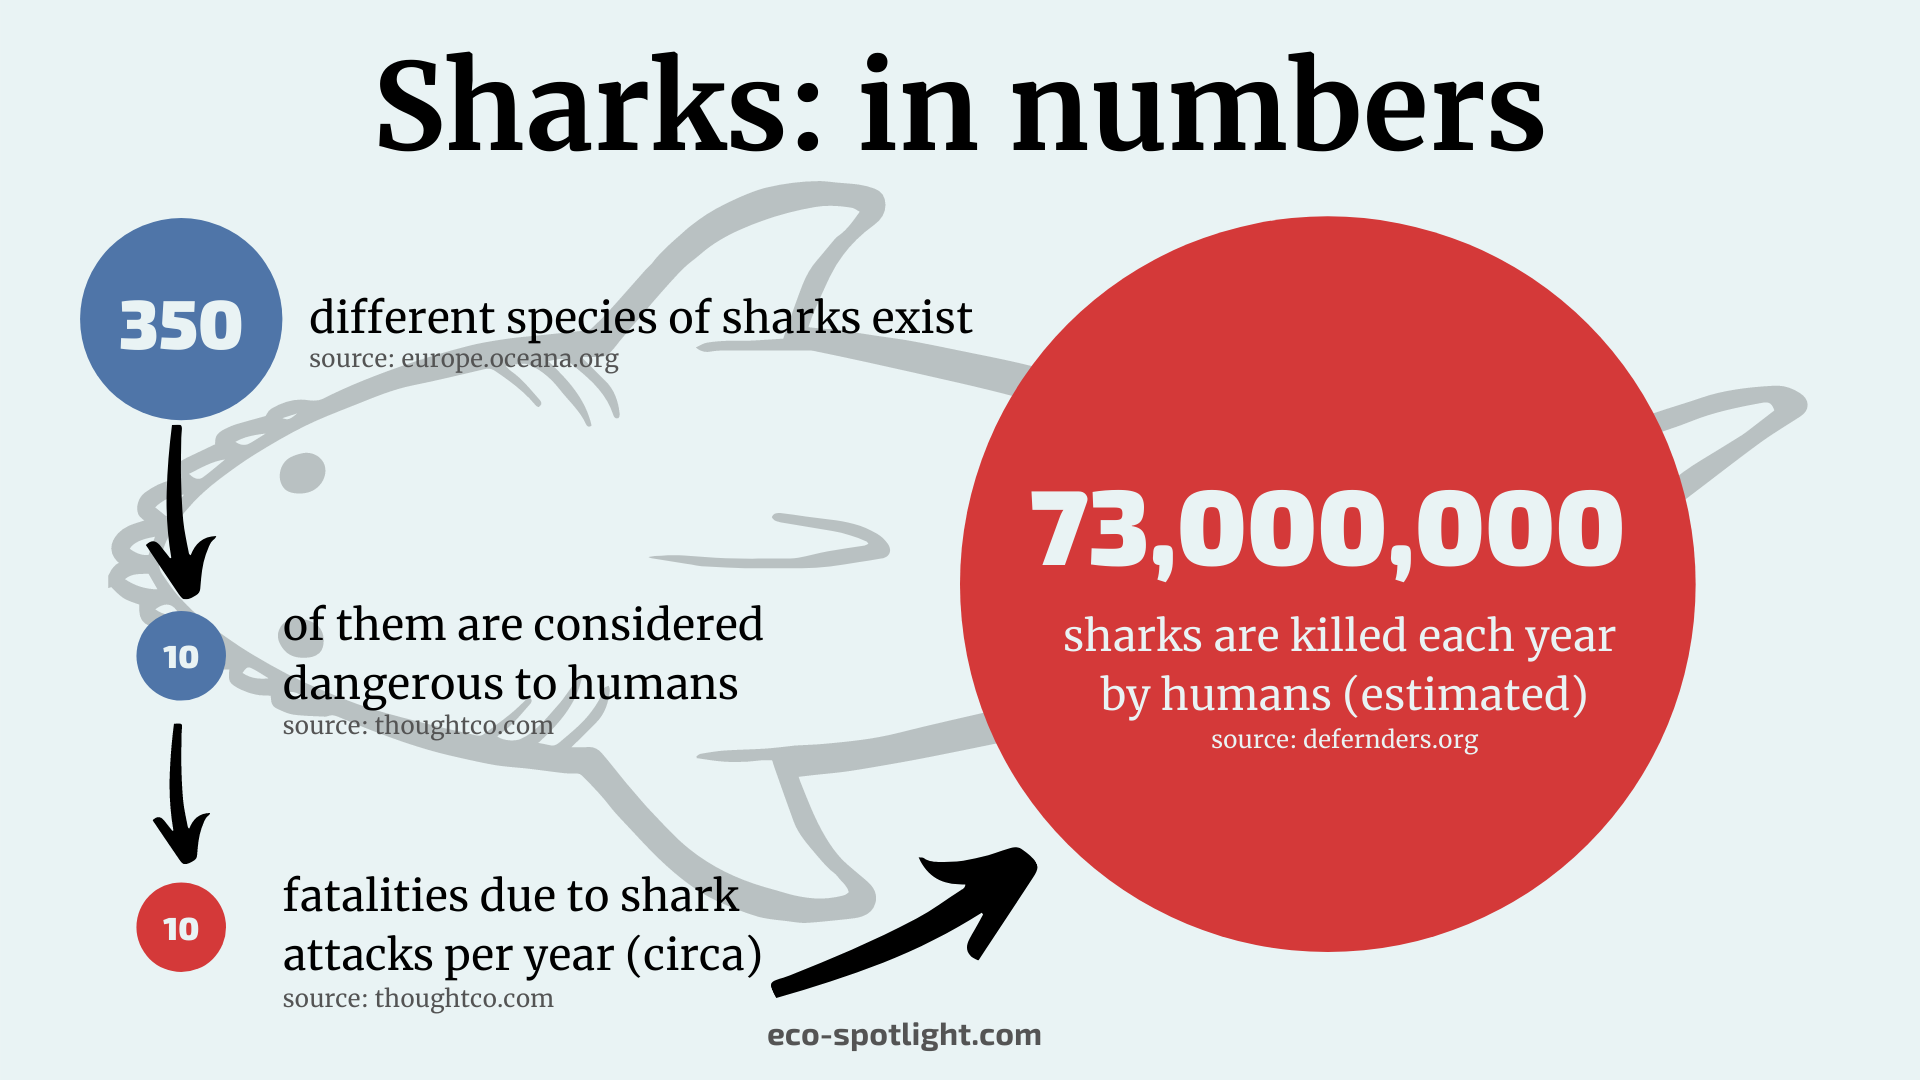 Statistic on the number of shark species